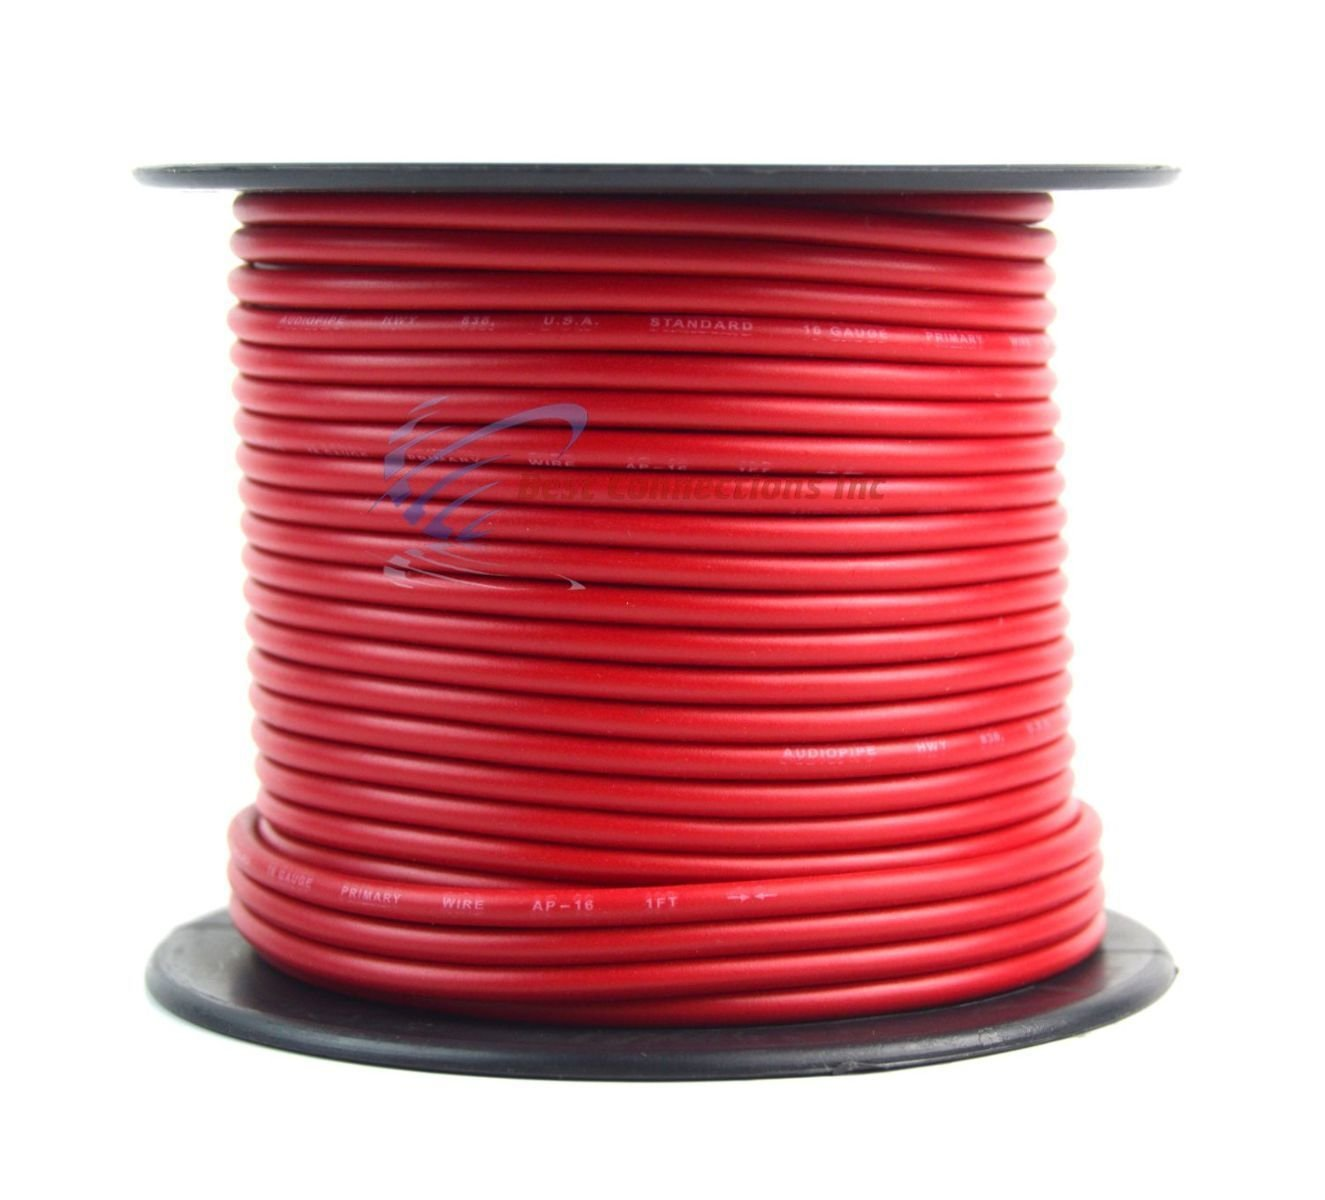 16 GAUGE WIRE RED & BLACK POWER GROUND 100 FT EACH PRIMARY STRANDED COPPER CLAD by Best Connections (Image #2)